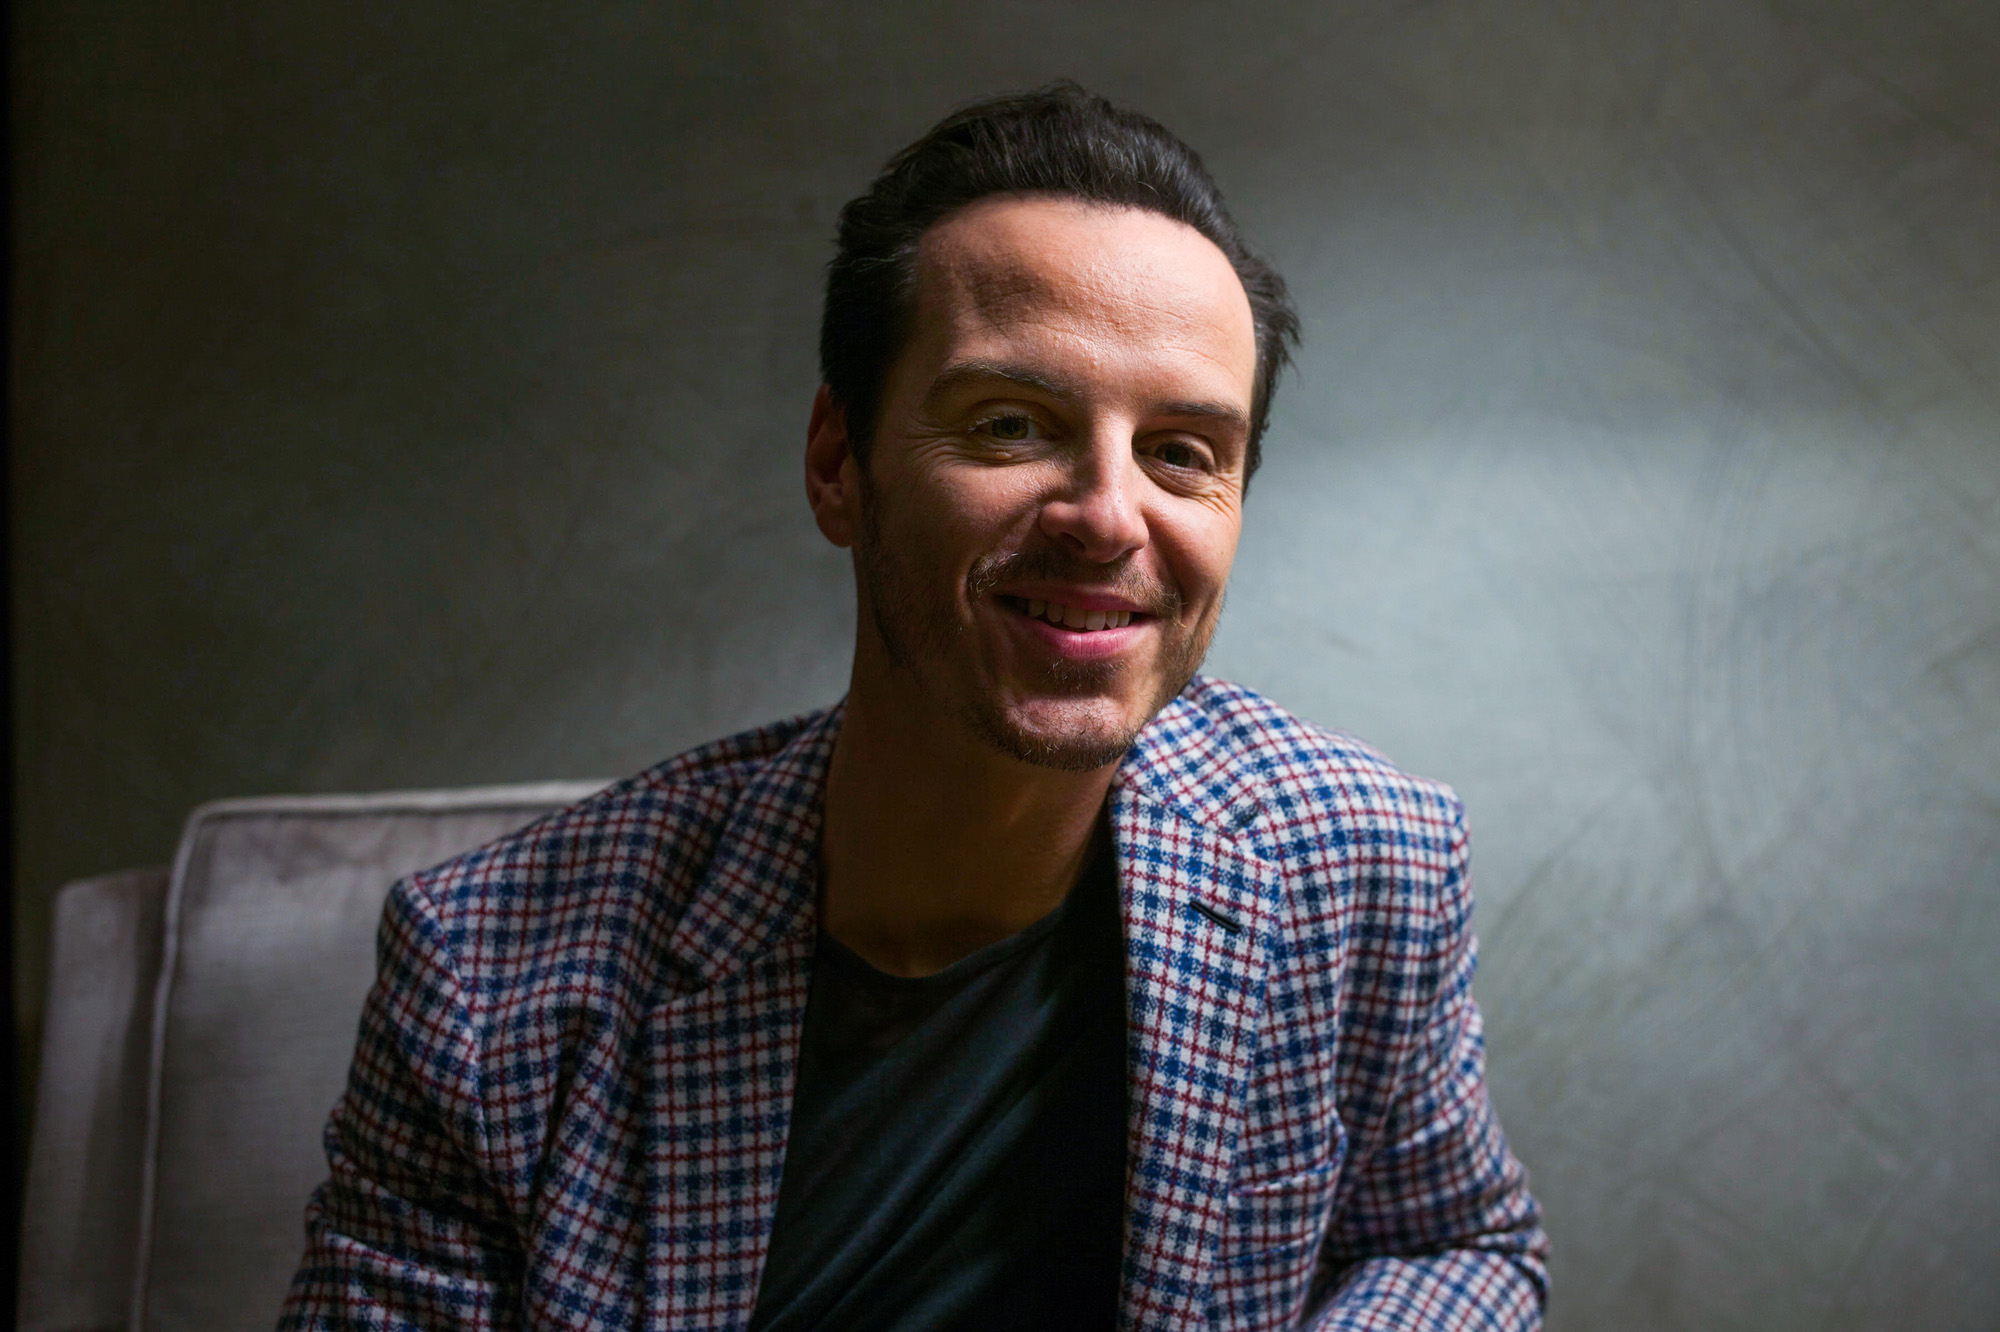 andrew scott personal lifeandrew scott tumblr, andrew scott hamlet, andrew scott gif, andrew scott vk, andrew scott interview, andrew scott height, andrew scott and benedict cumberbatch, andrew scott spectre, andrew scott and amanda abbington, andrew scott theatre, andrew scott 2017, andrew scott wallpaper, andrew scott boyfriend bafta, andrew scott фильмография, andrew scott personal life, andrew scott png, andrew scott личная жизнь, andrew scott films, andrew scott wiki, andrew scott stephen beresford